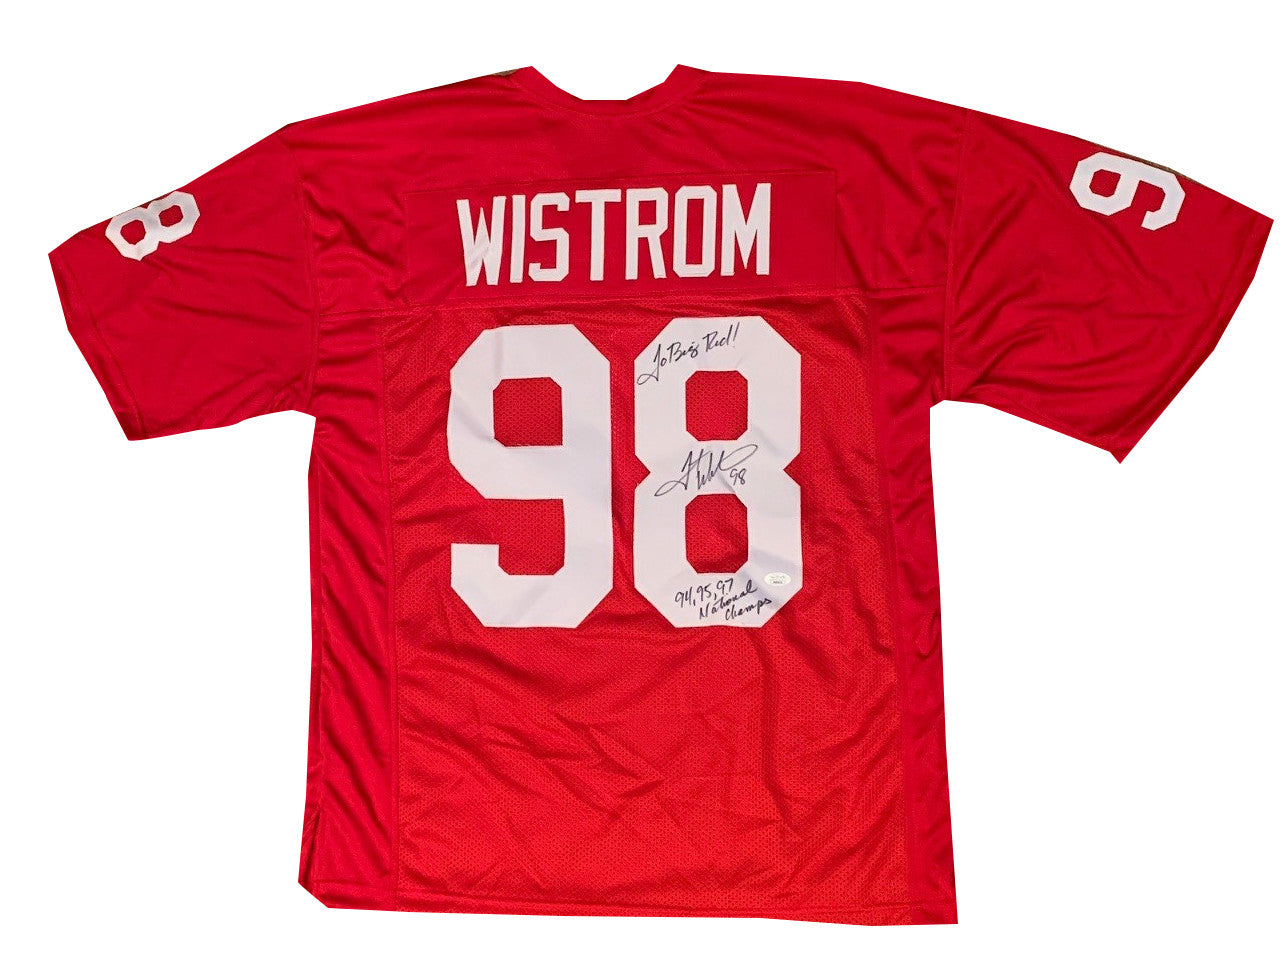 Grant Wistrom Autographed Nebraska Signed Football Jersey 94 95 97 NATL CHAMPS JSA COA-Powers Sports Memorabilia